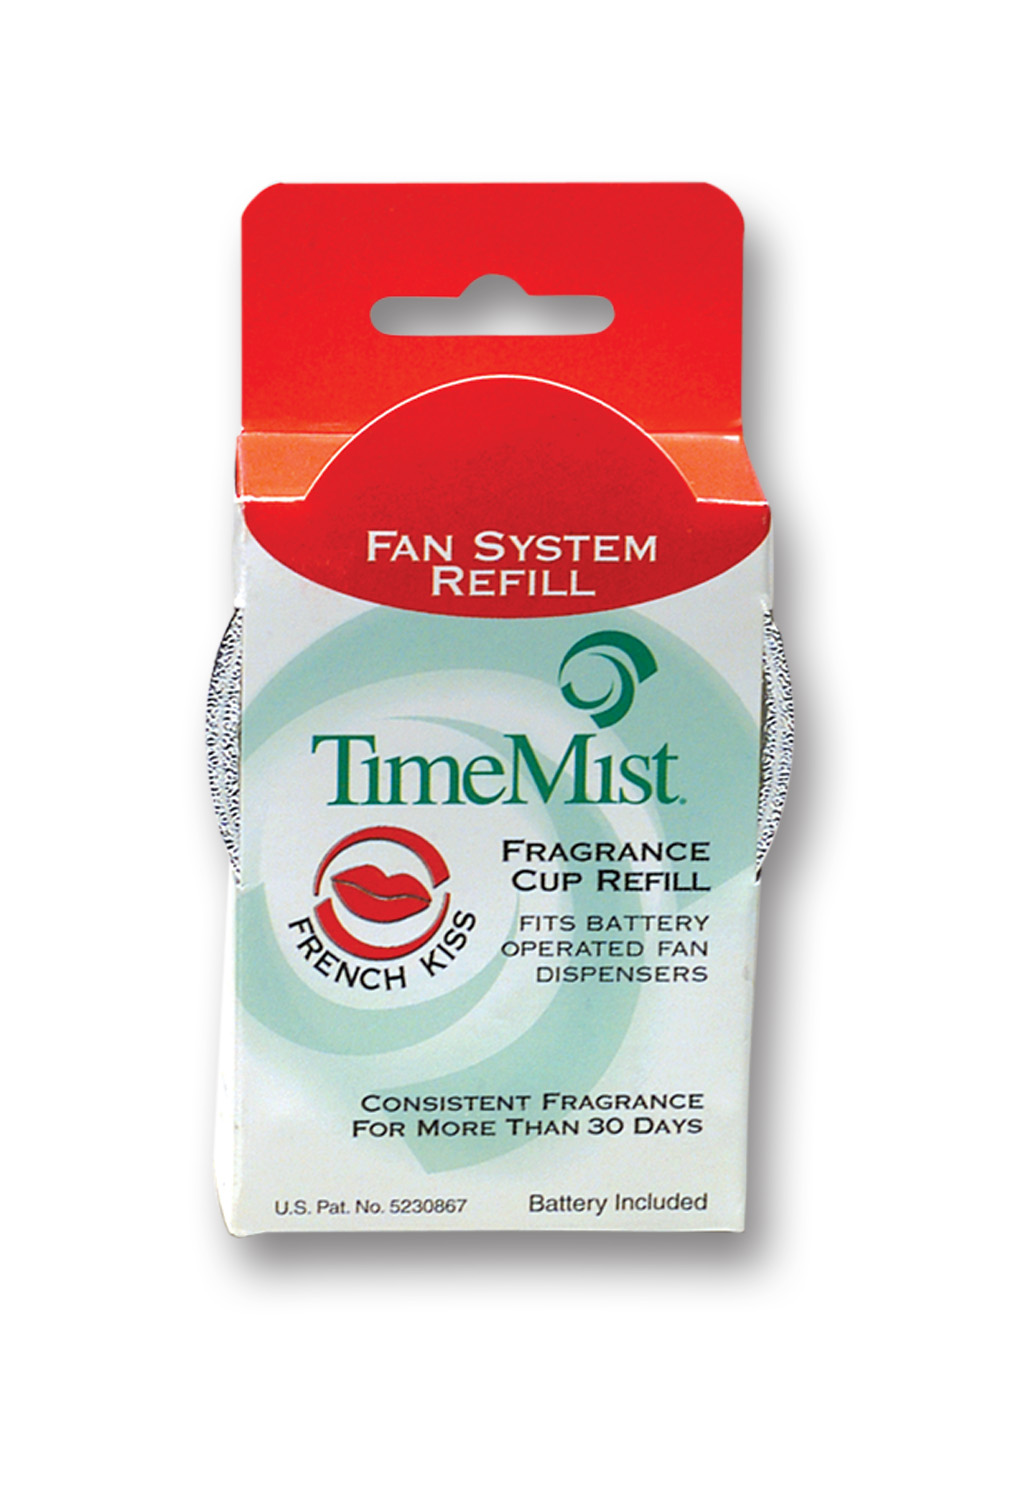 French Kiss - TimeMist Fan System Fragrance Cup Refill - (Case of 12)